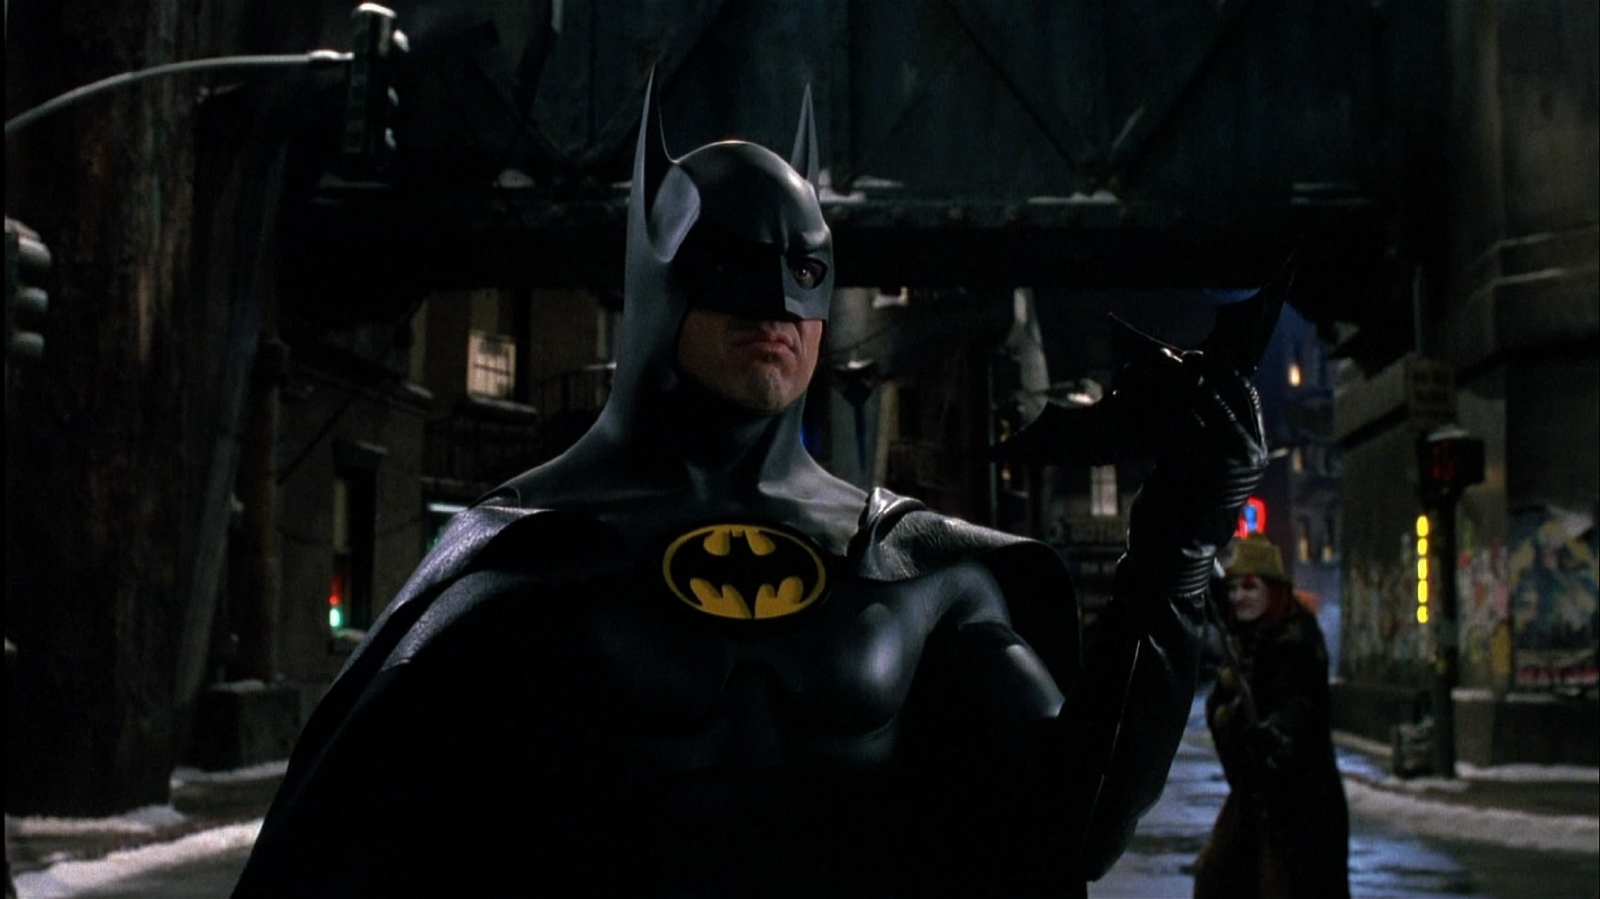 Michael Keaton on Turning Down Batman Forever: 'It Sucked'